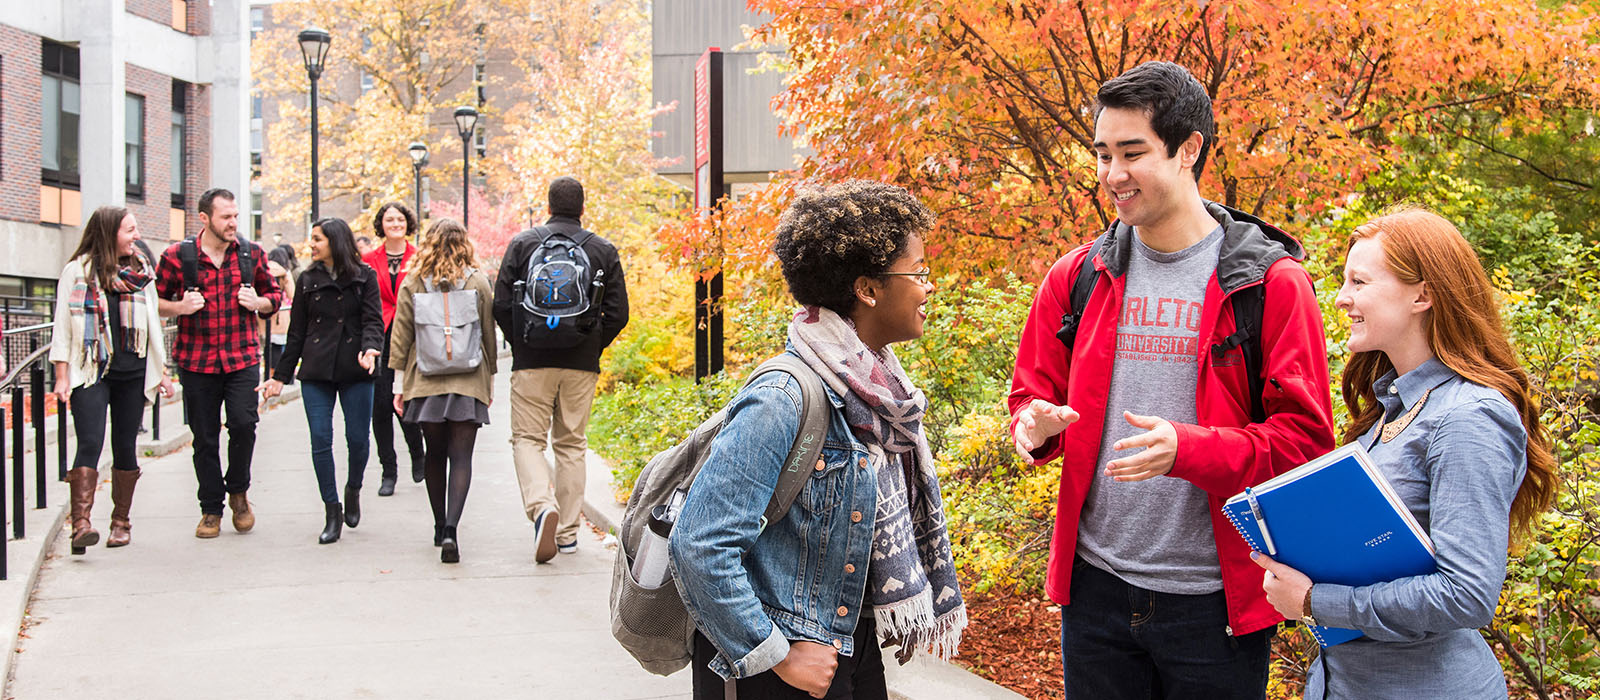 A group of students talking together on the Carleton University campus in the fall.